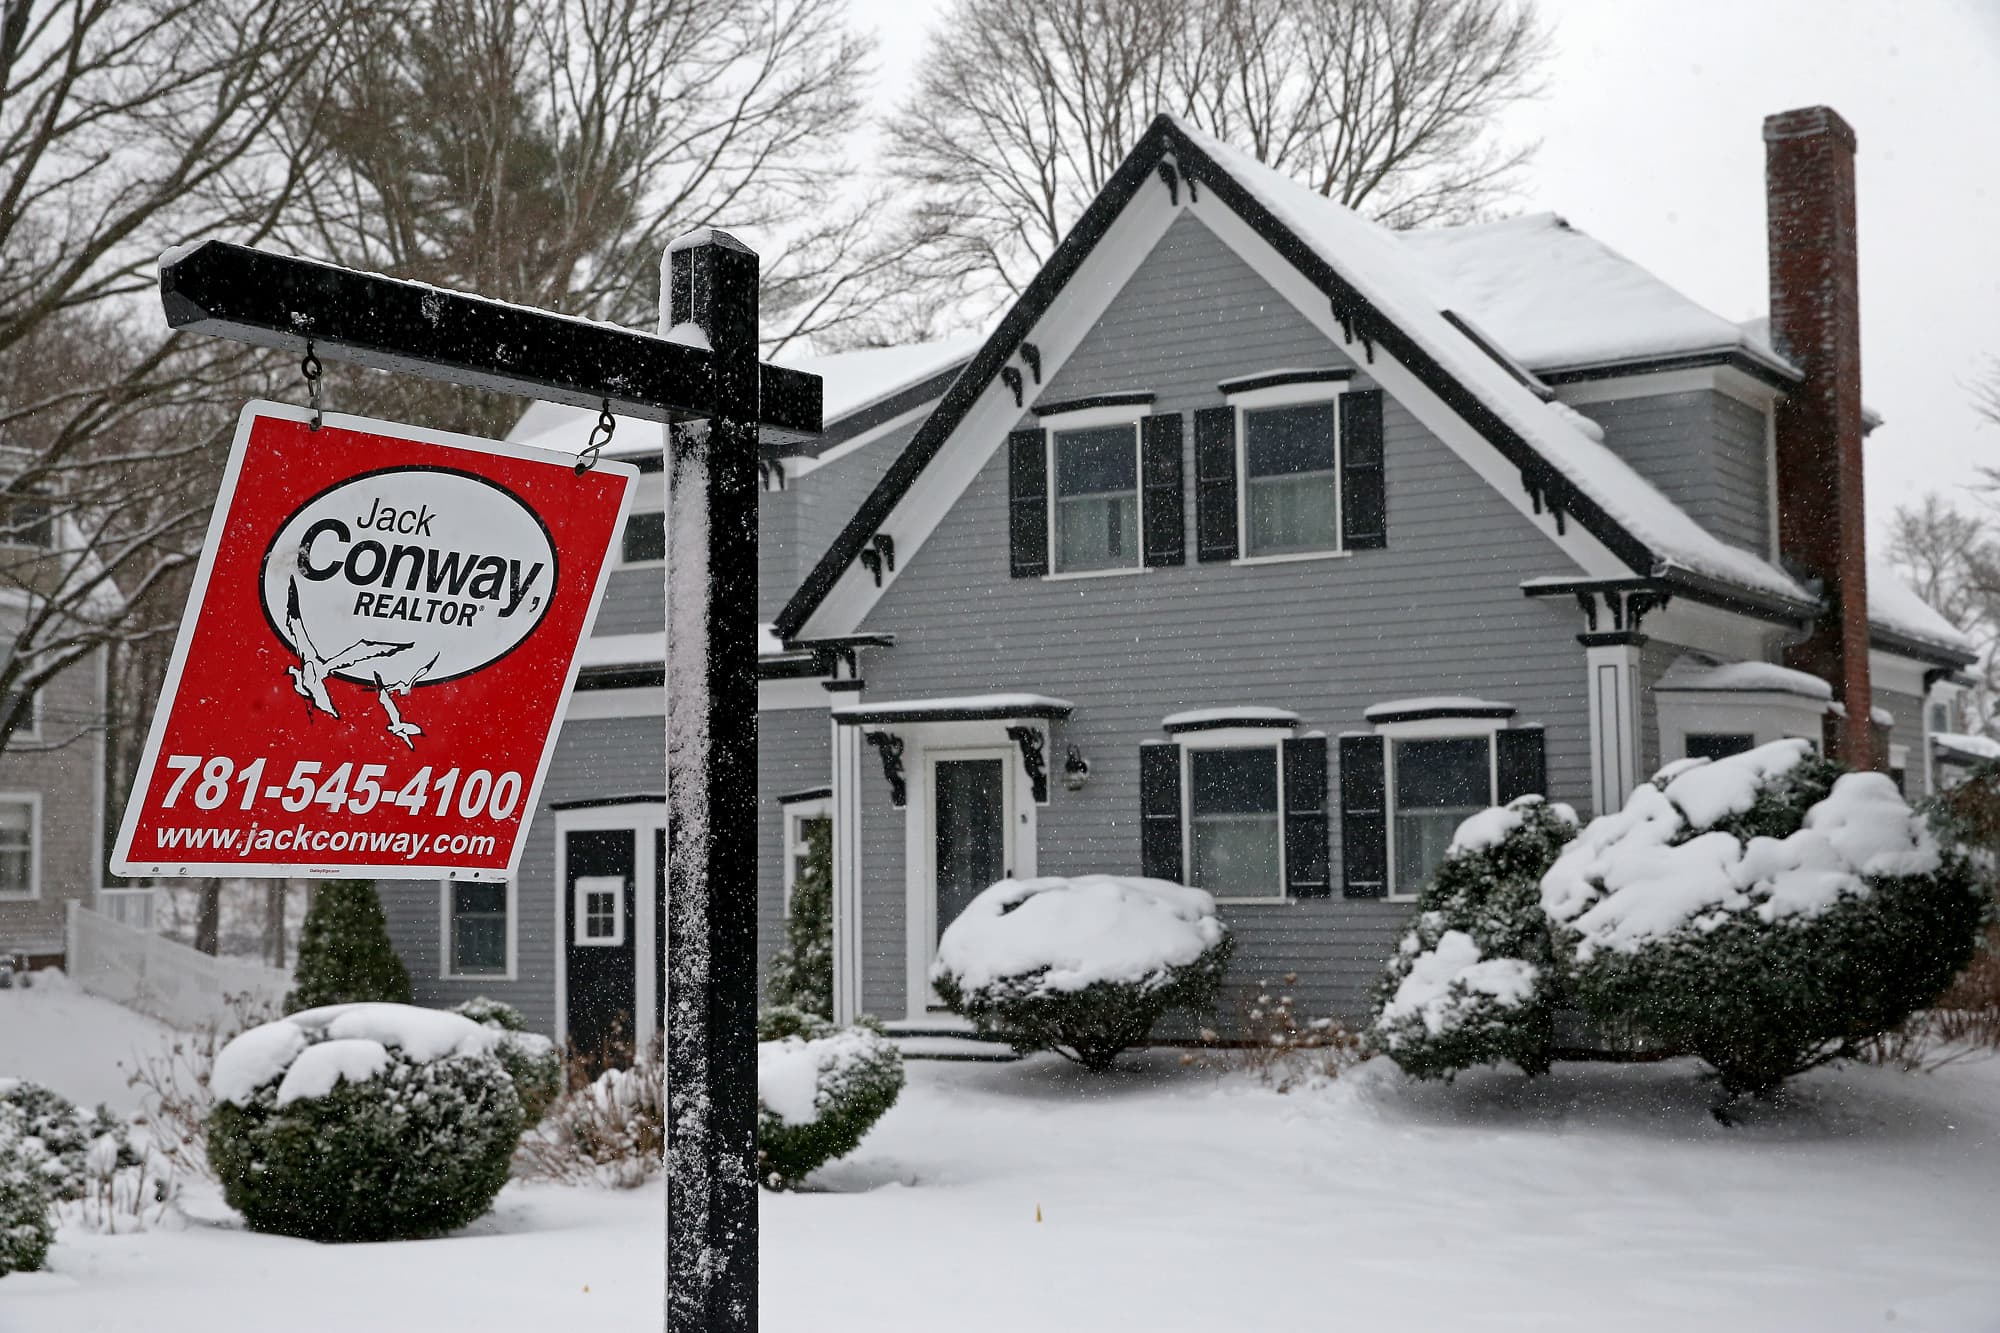 Existing home sales rise slightly in January, but record low supply weighs on market